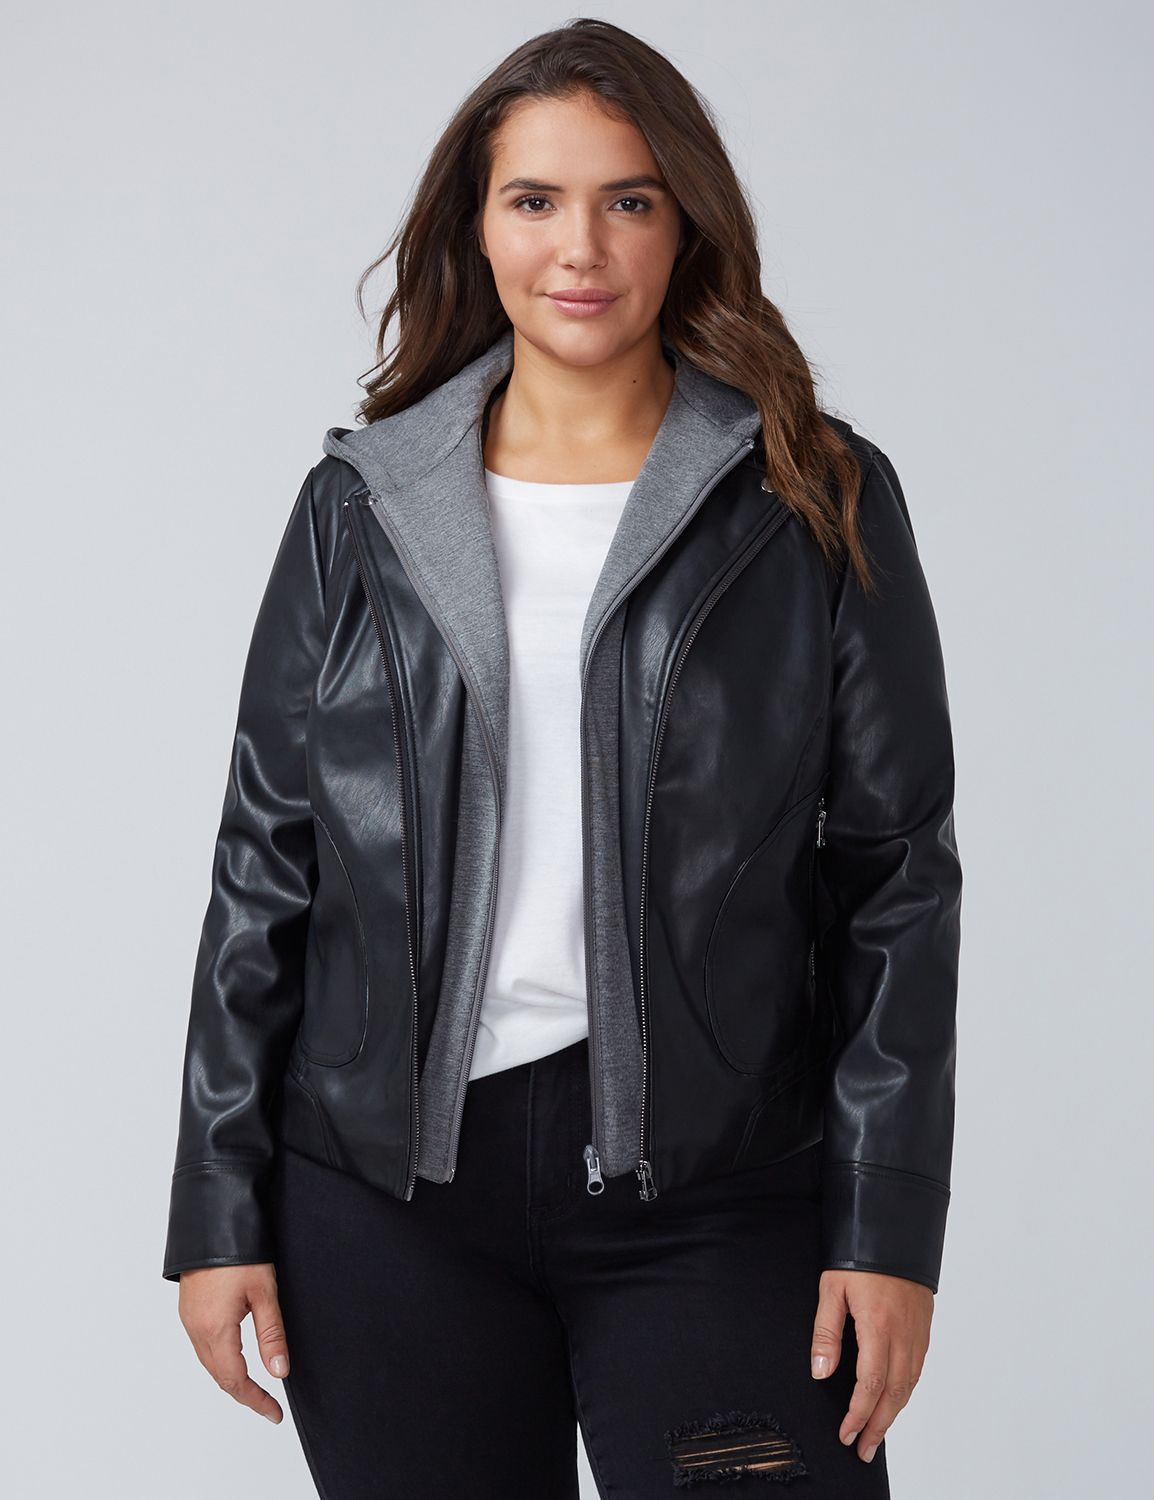 Lane Bryant Womens Faux Leather Moto Jacket With Hood 22/24 Black